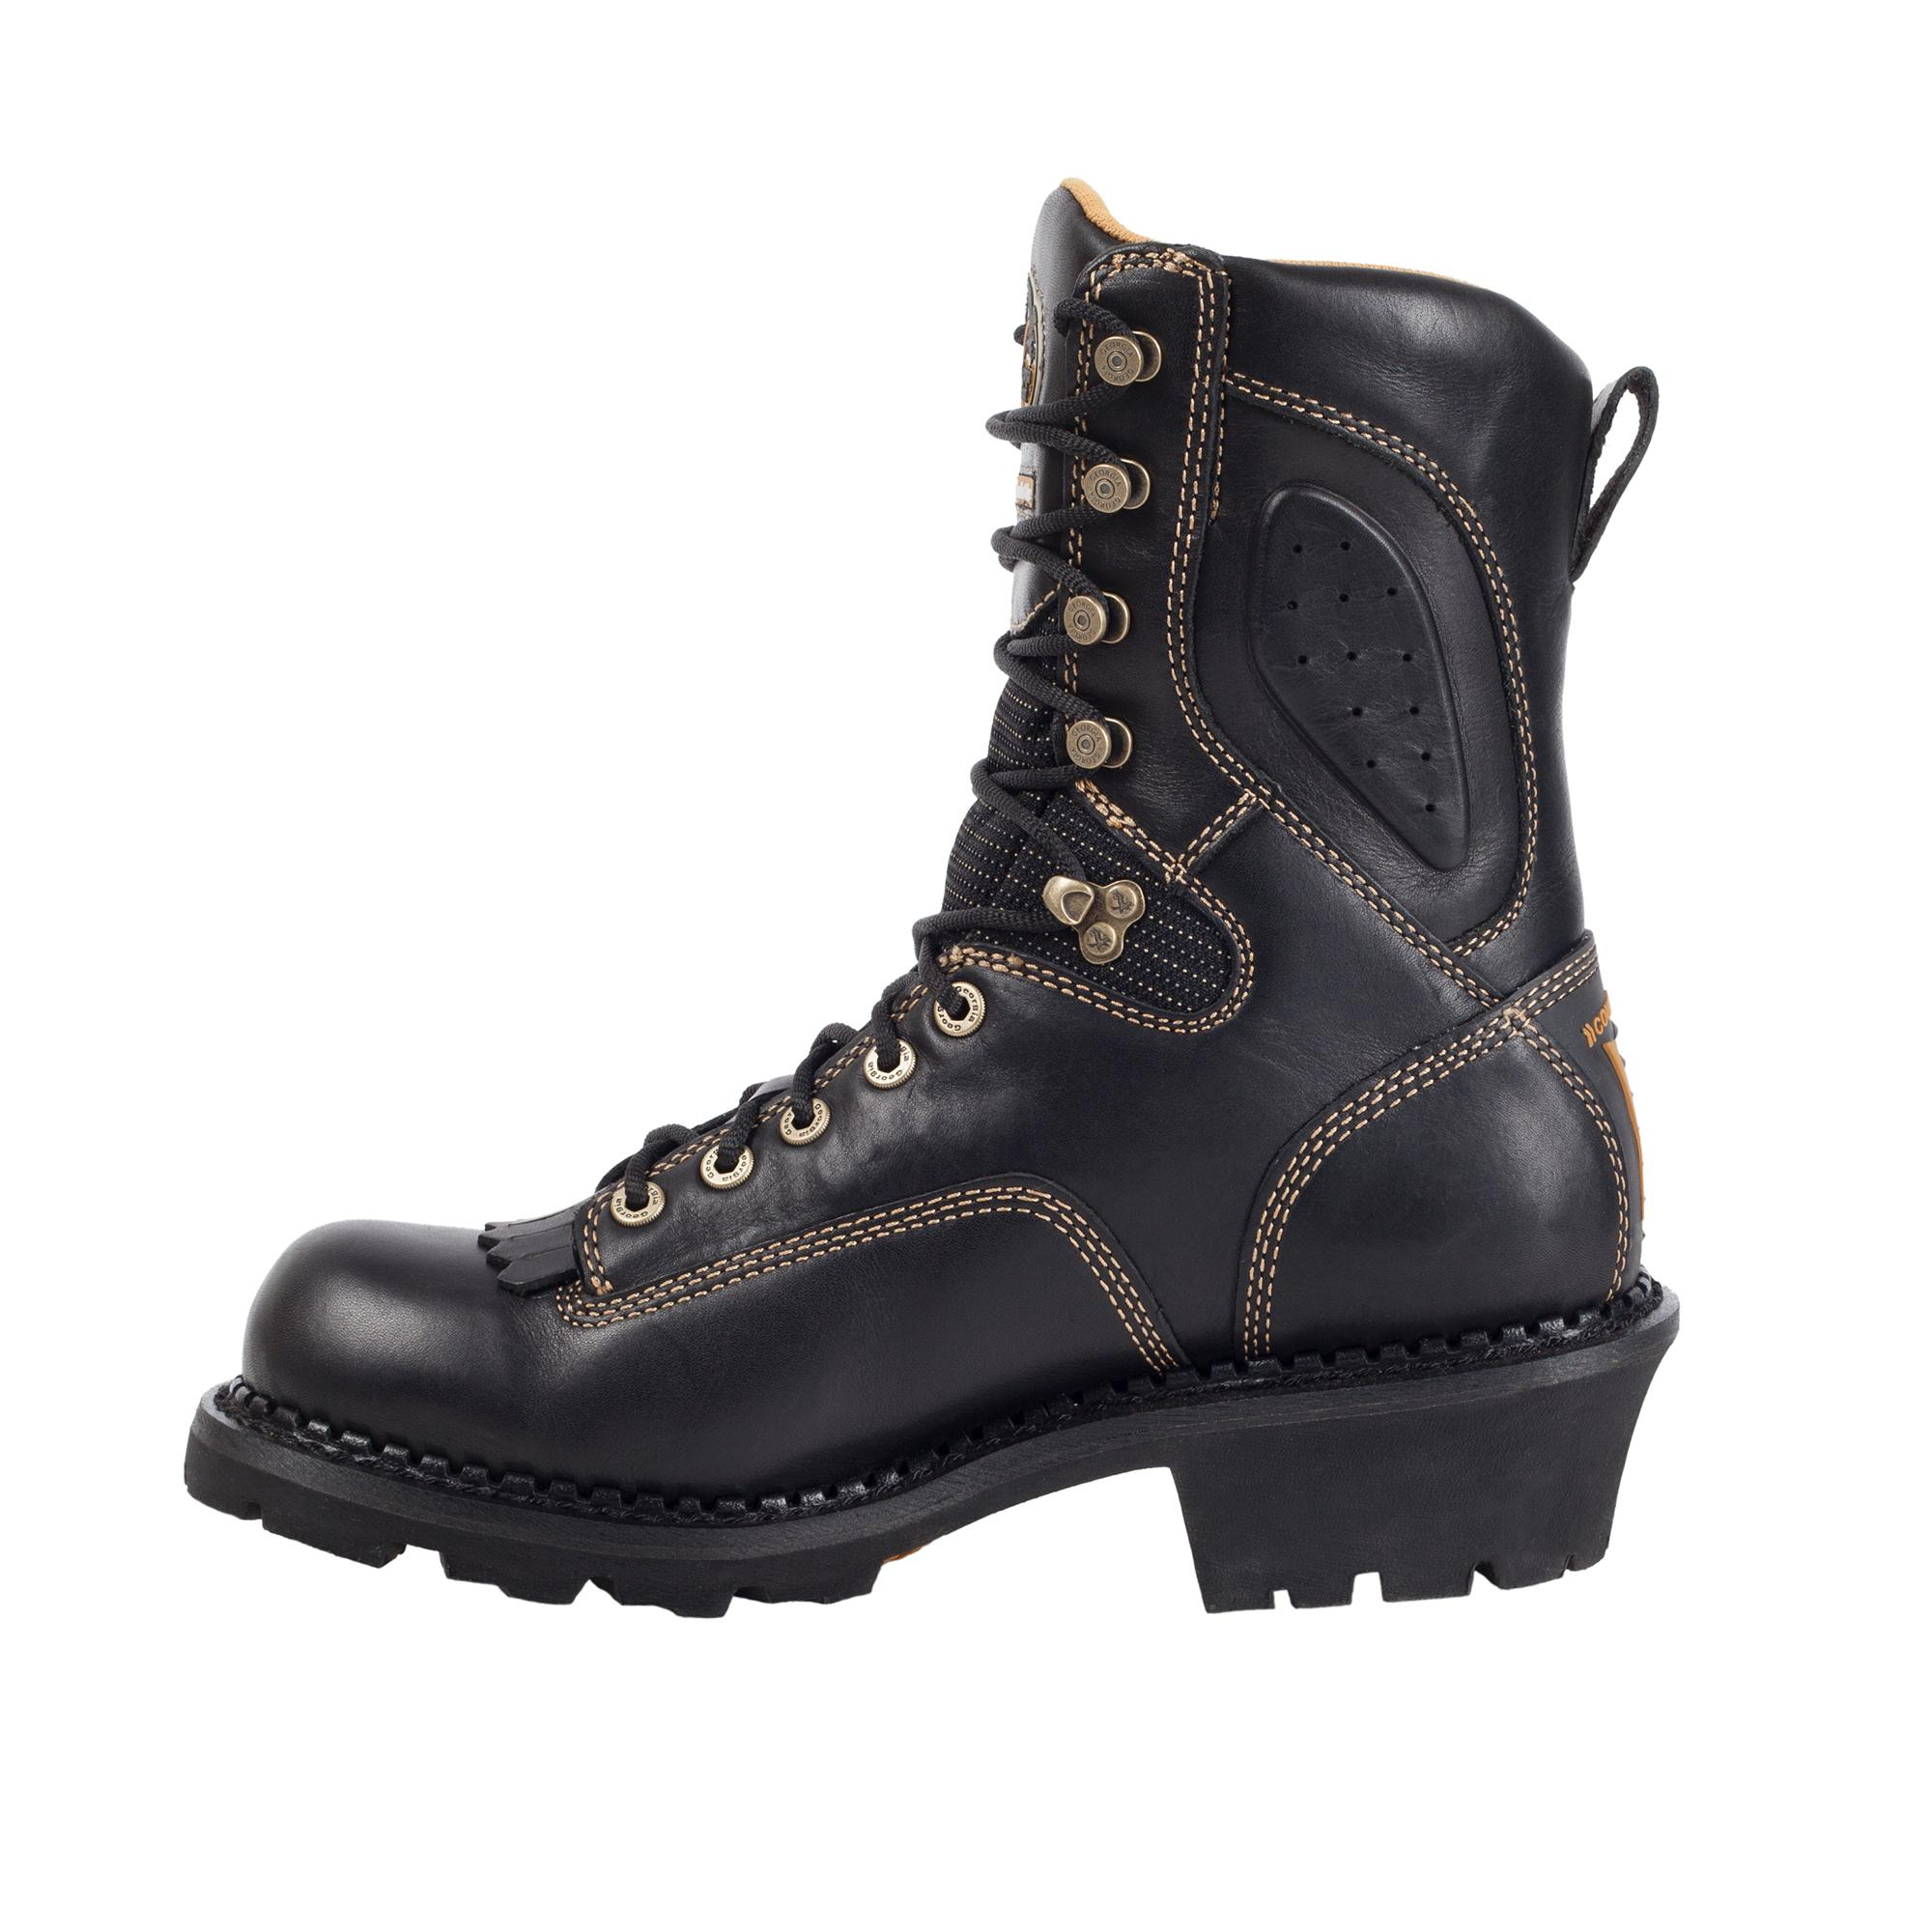 boots model brown most comforter product carolina waterproof men tools s shop comfortable toe wellington composite